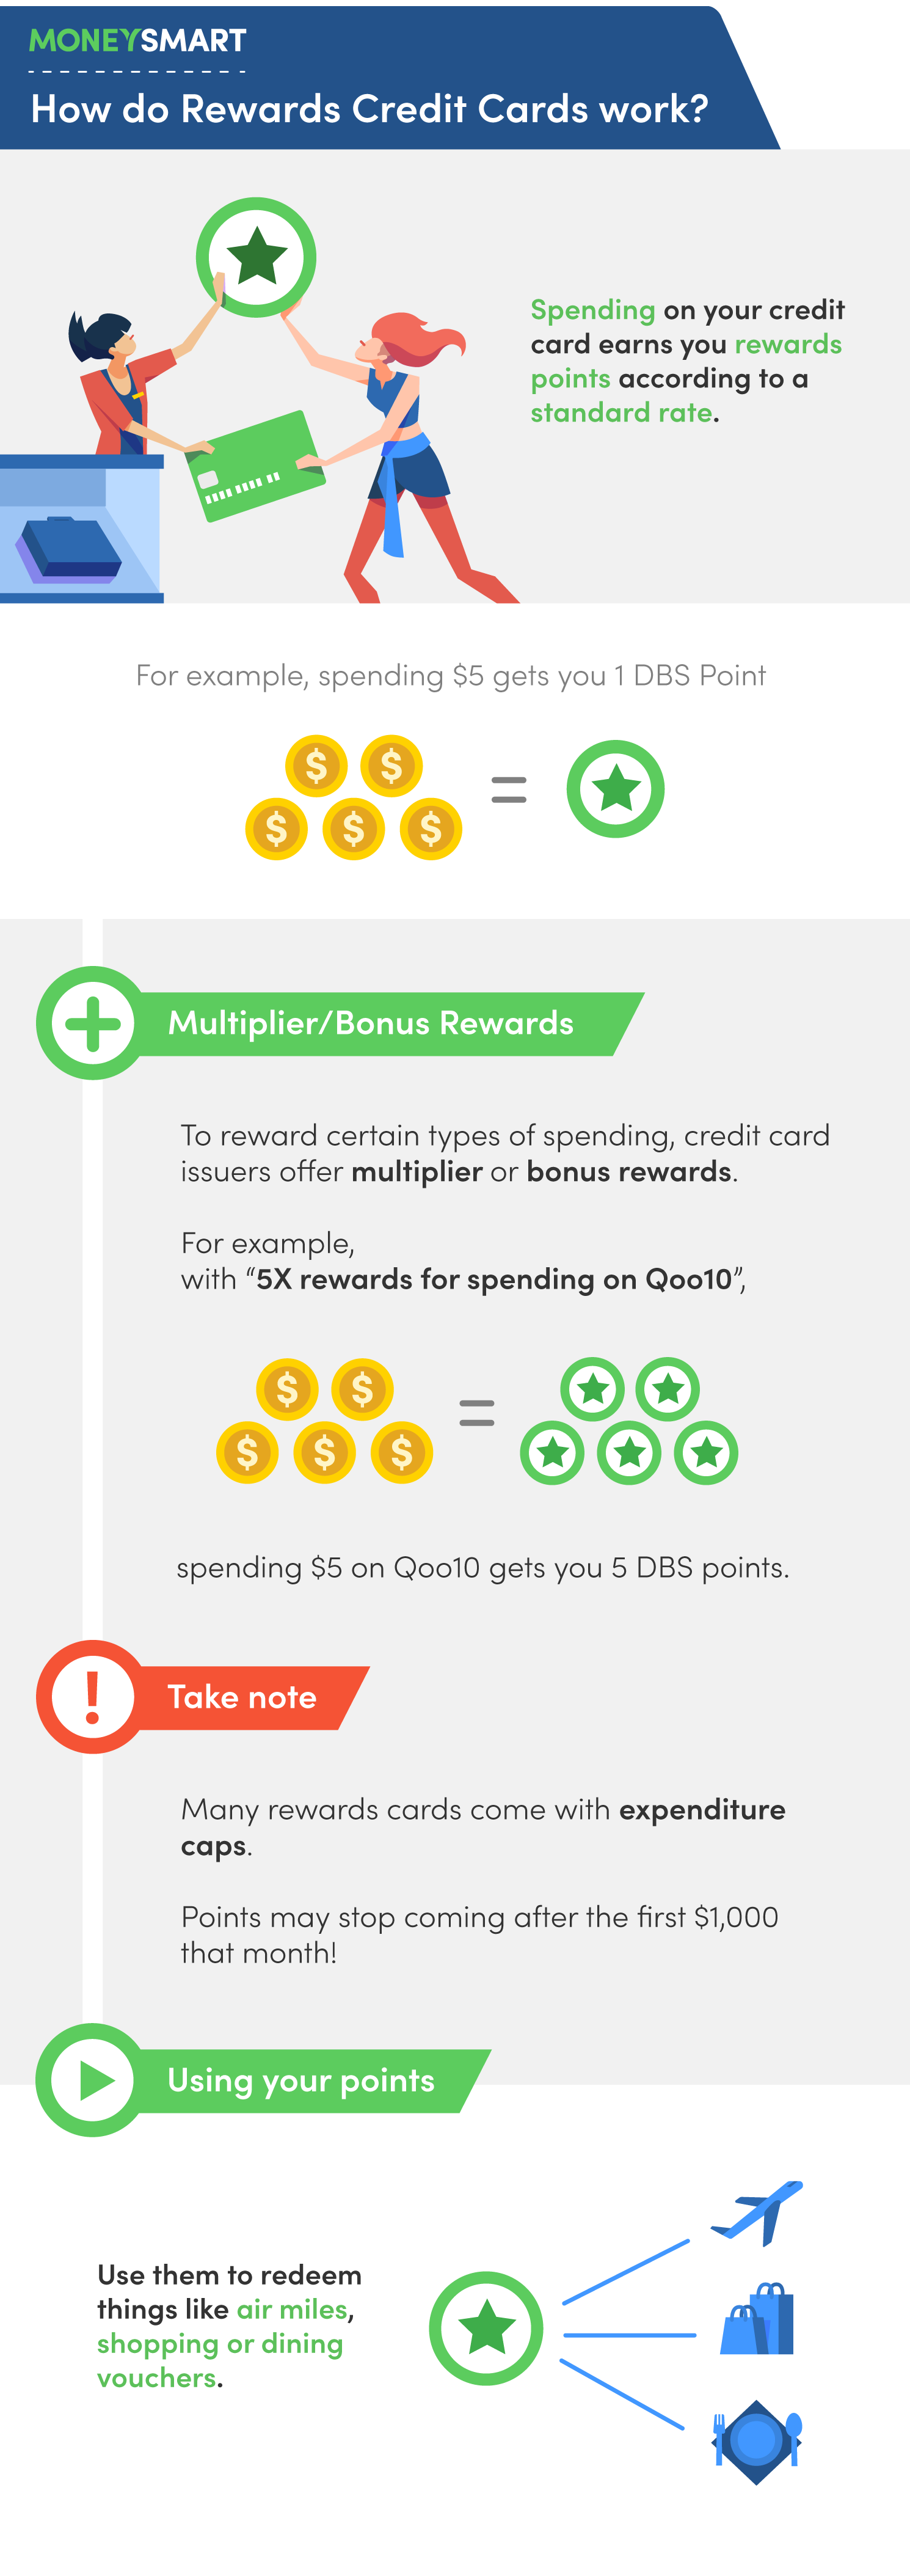 Best Rewards Credit Cards in Singapore